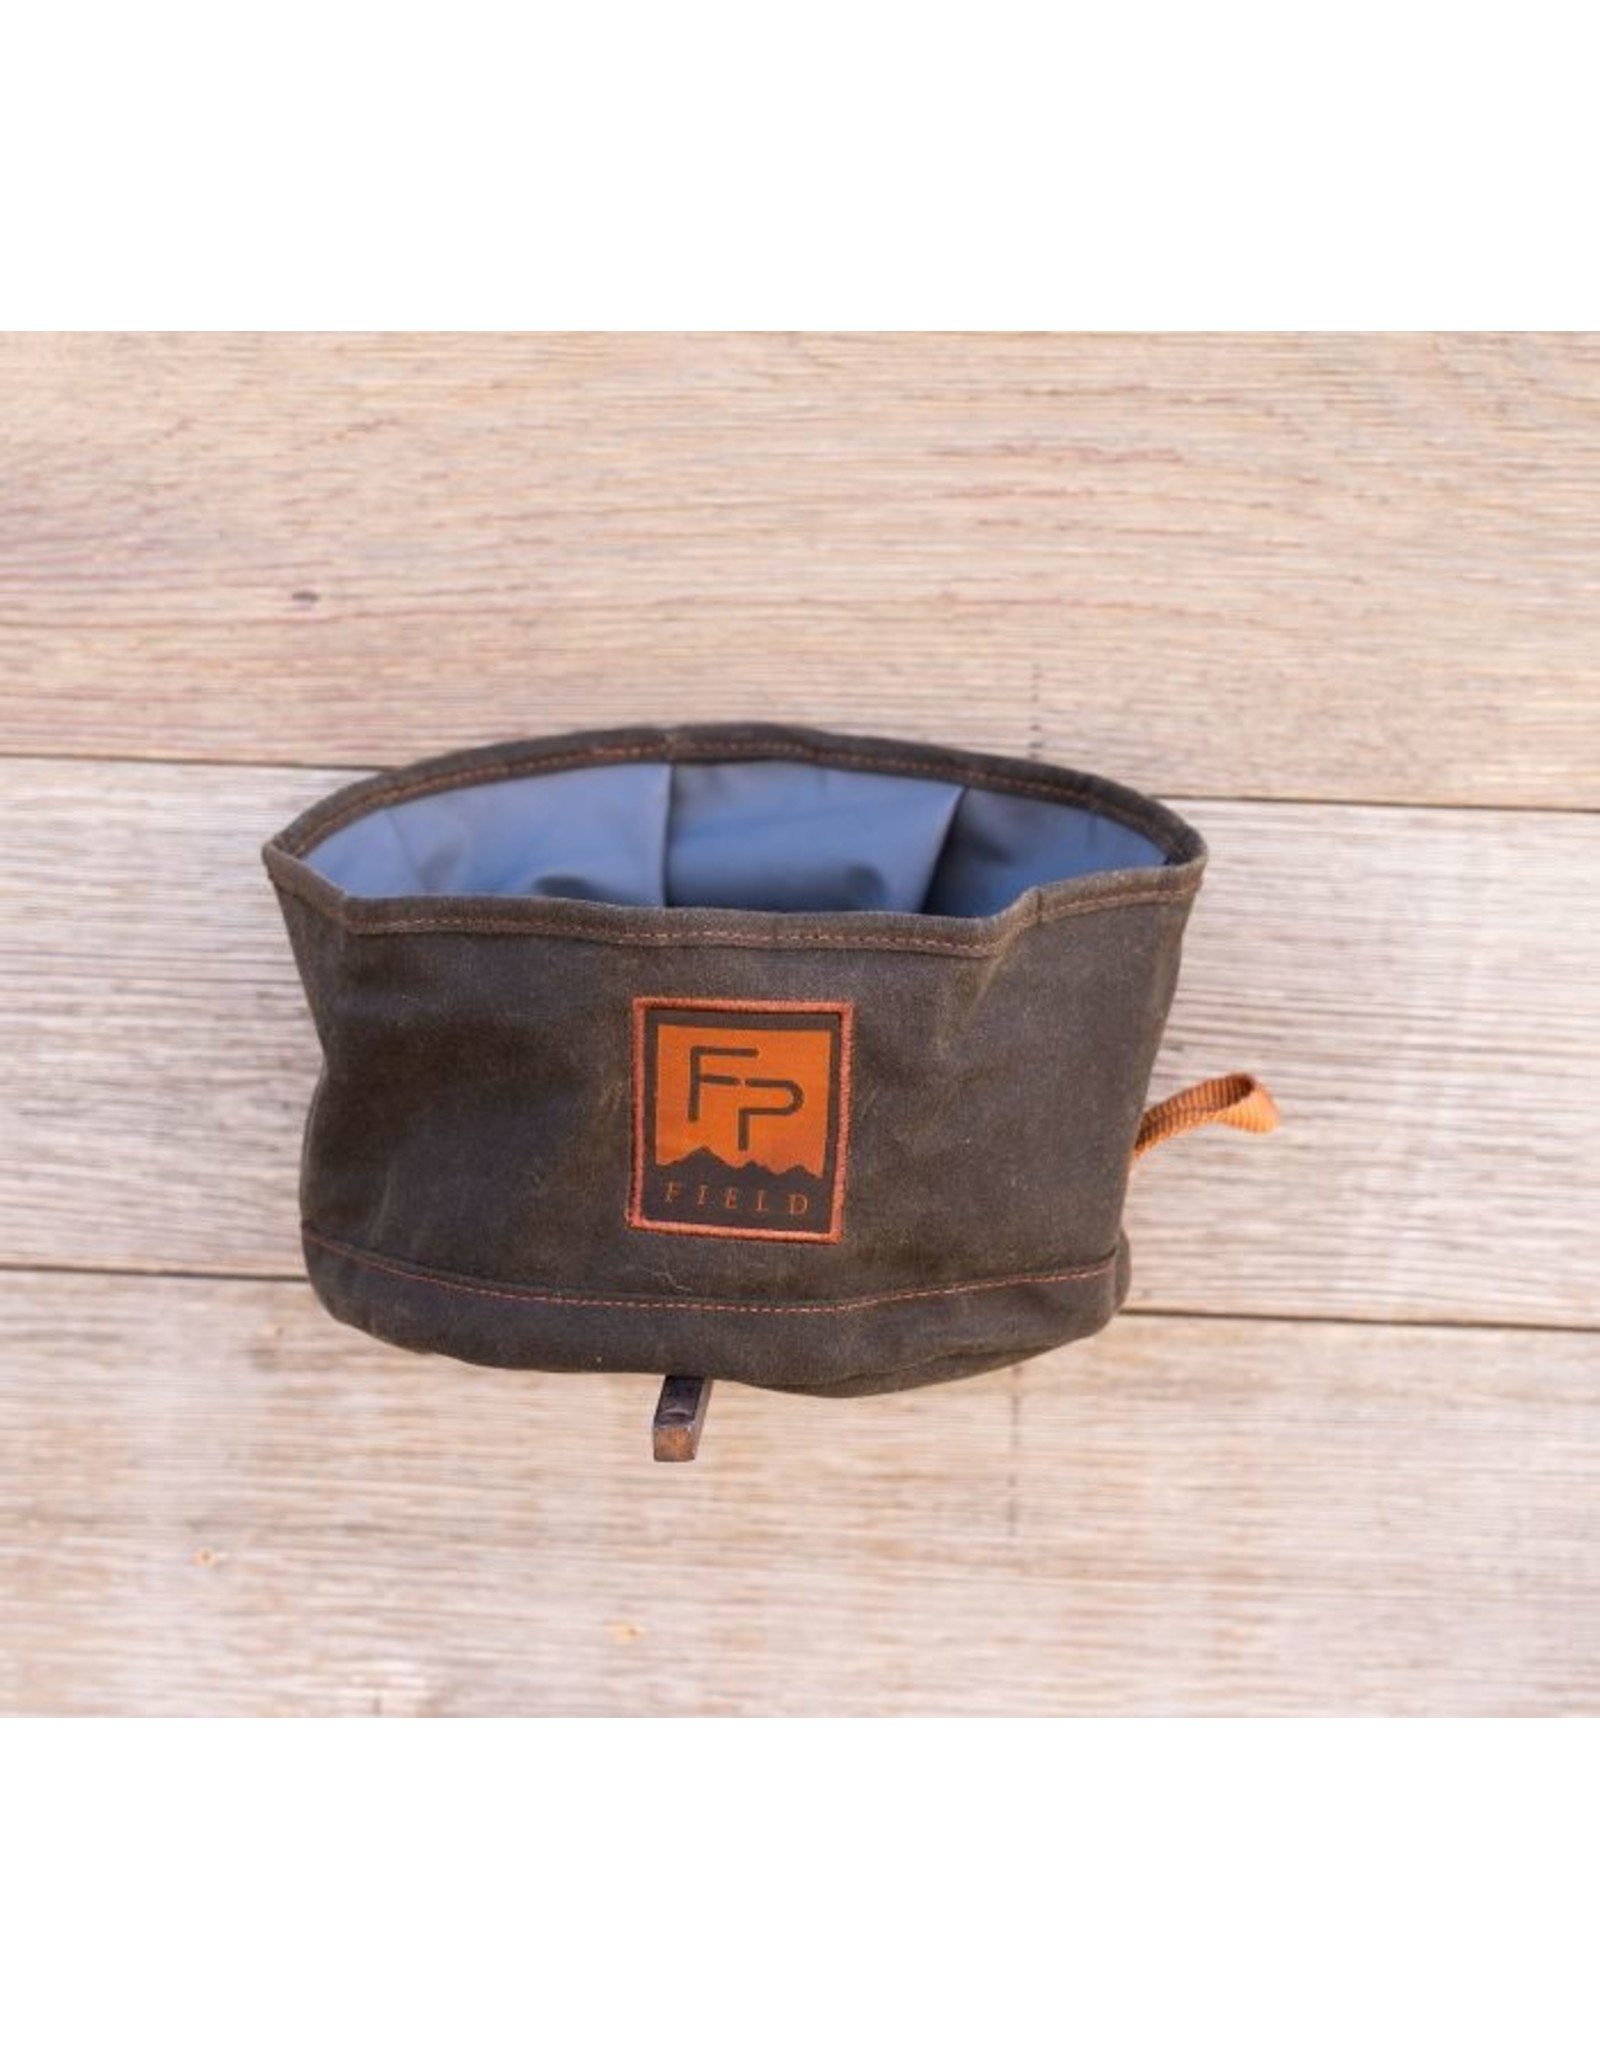 Fishpond Bow Wow Travel Water Bowl - Peat Moss